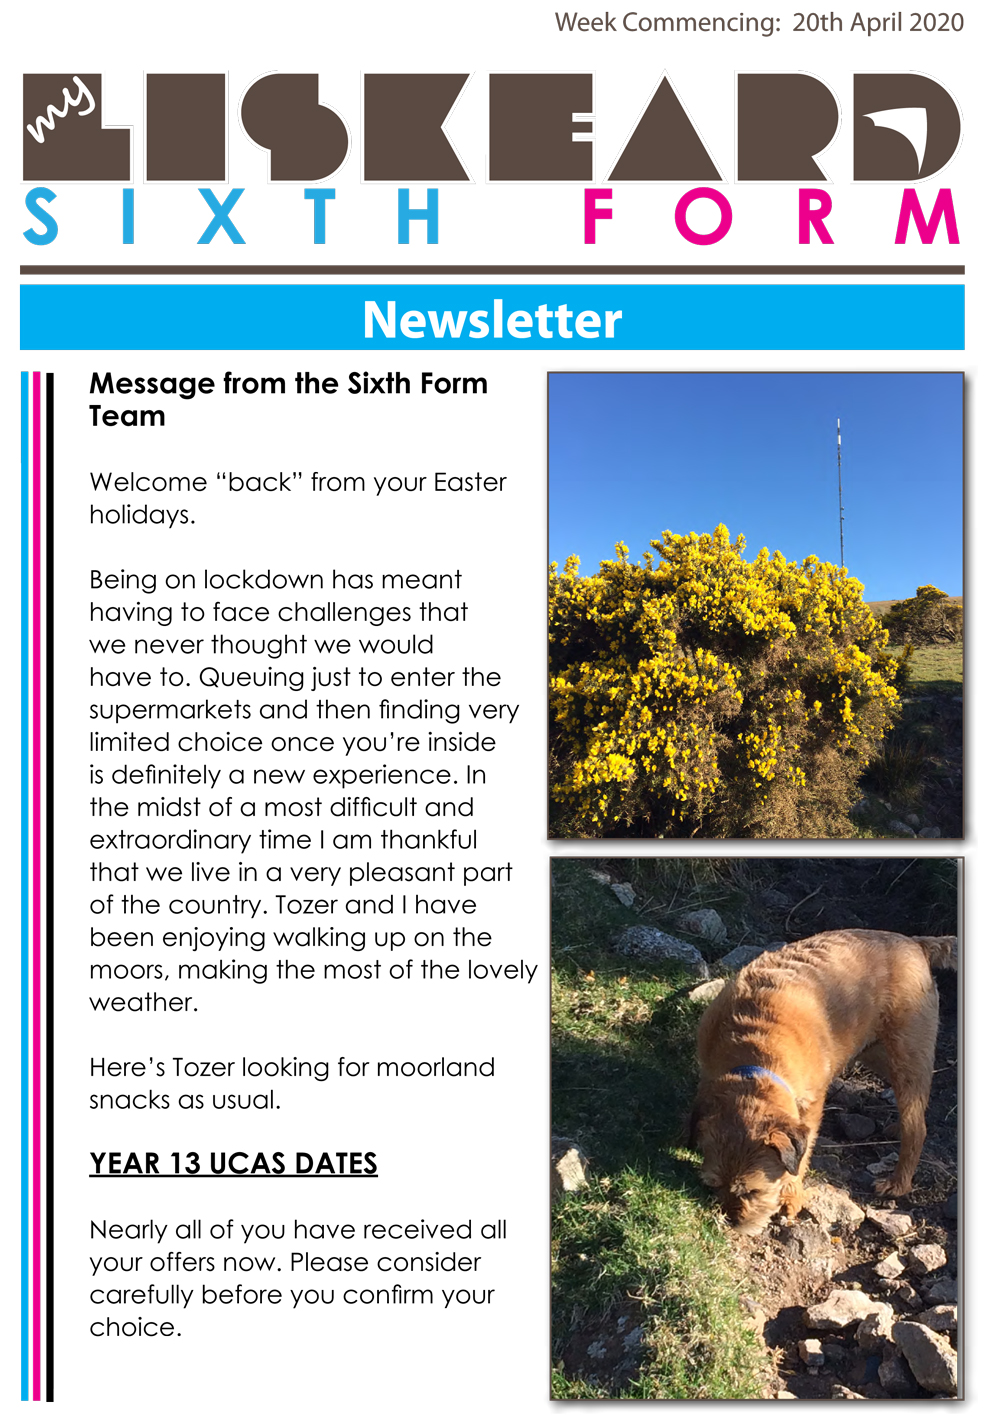 Sixth Form Newsletter 20 4 20 1